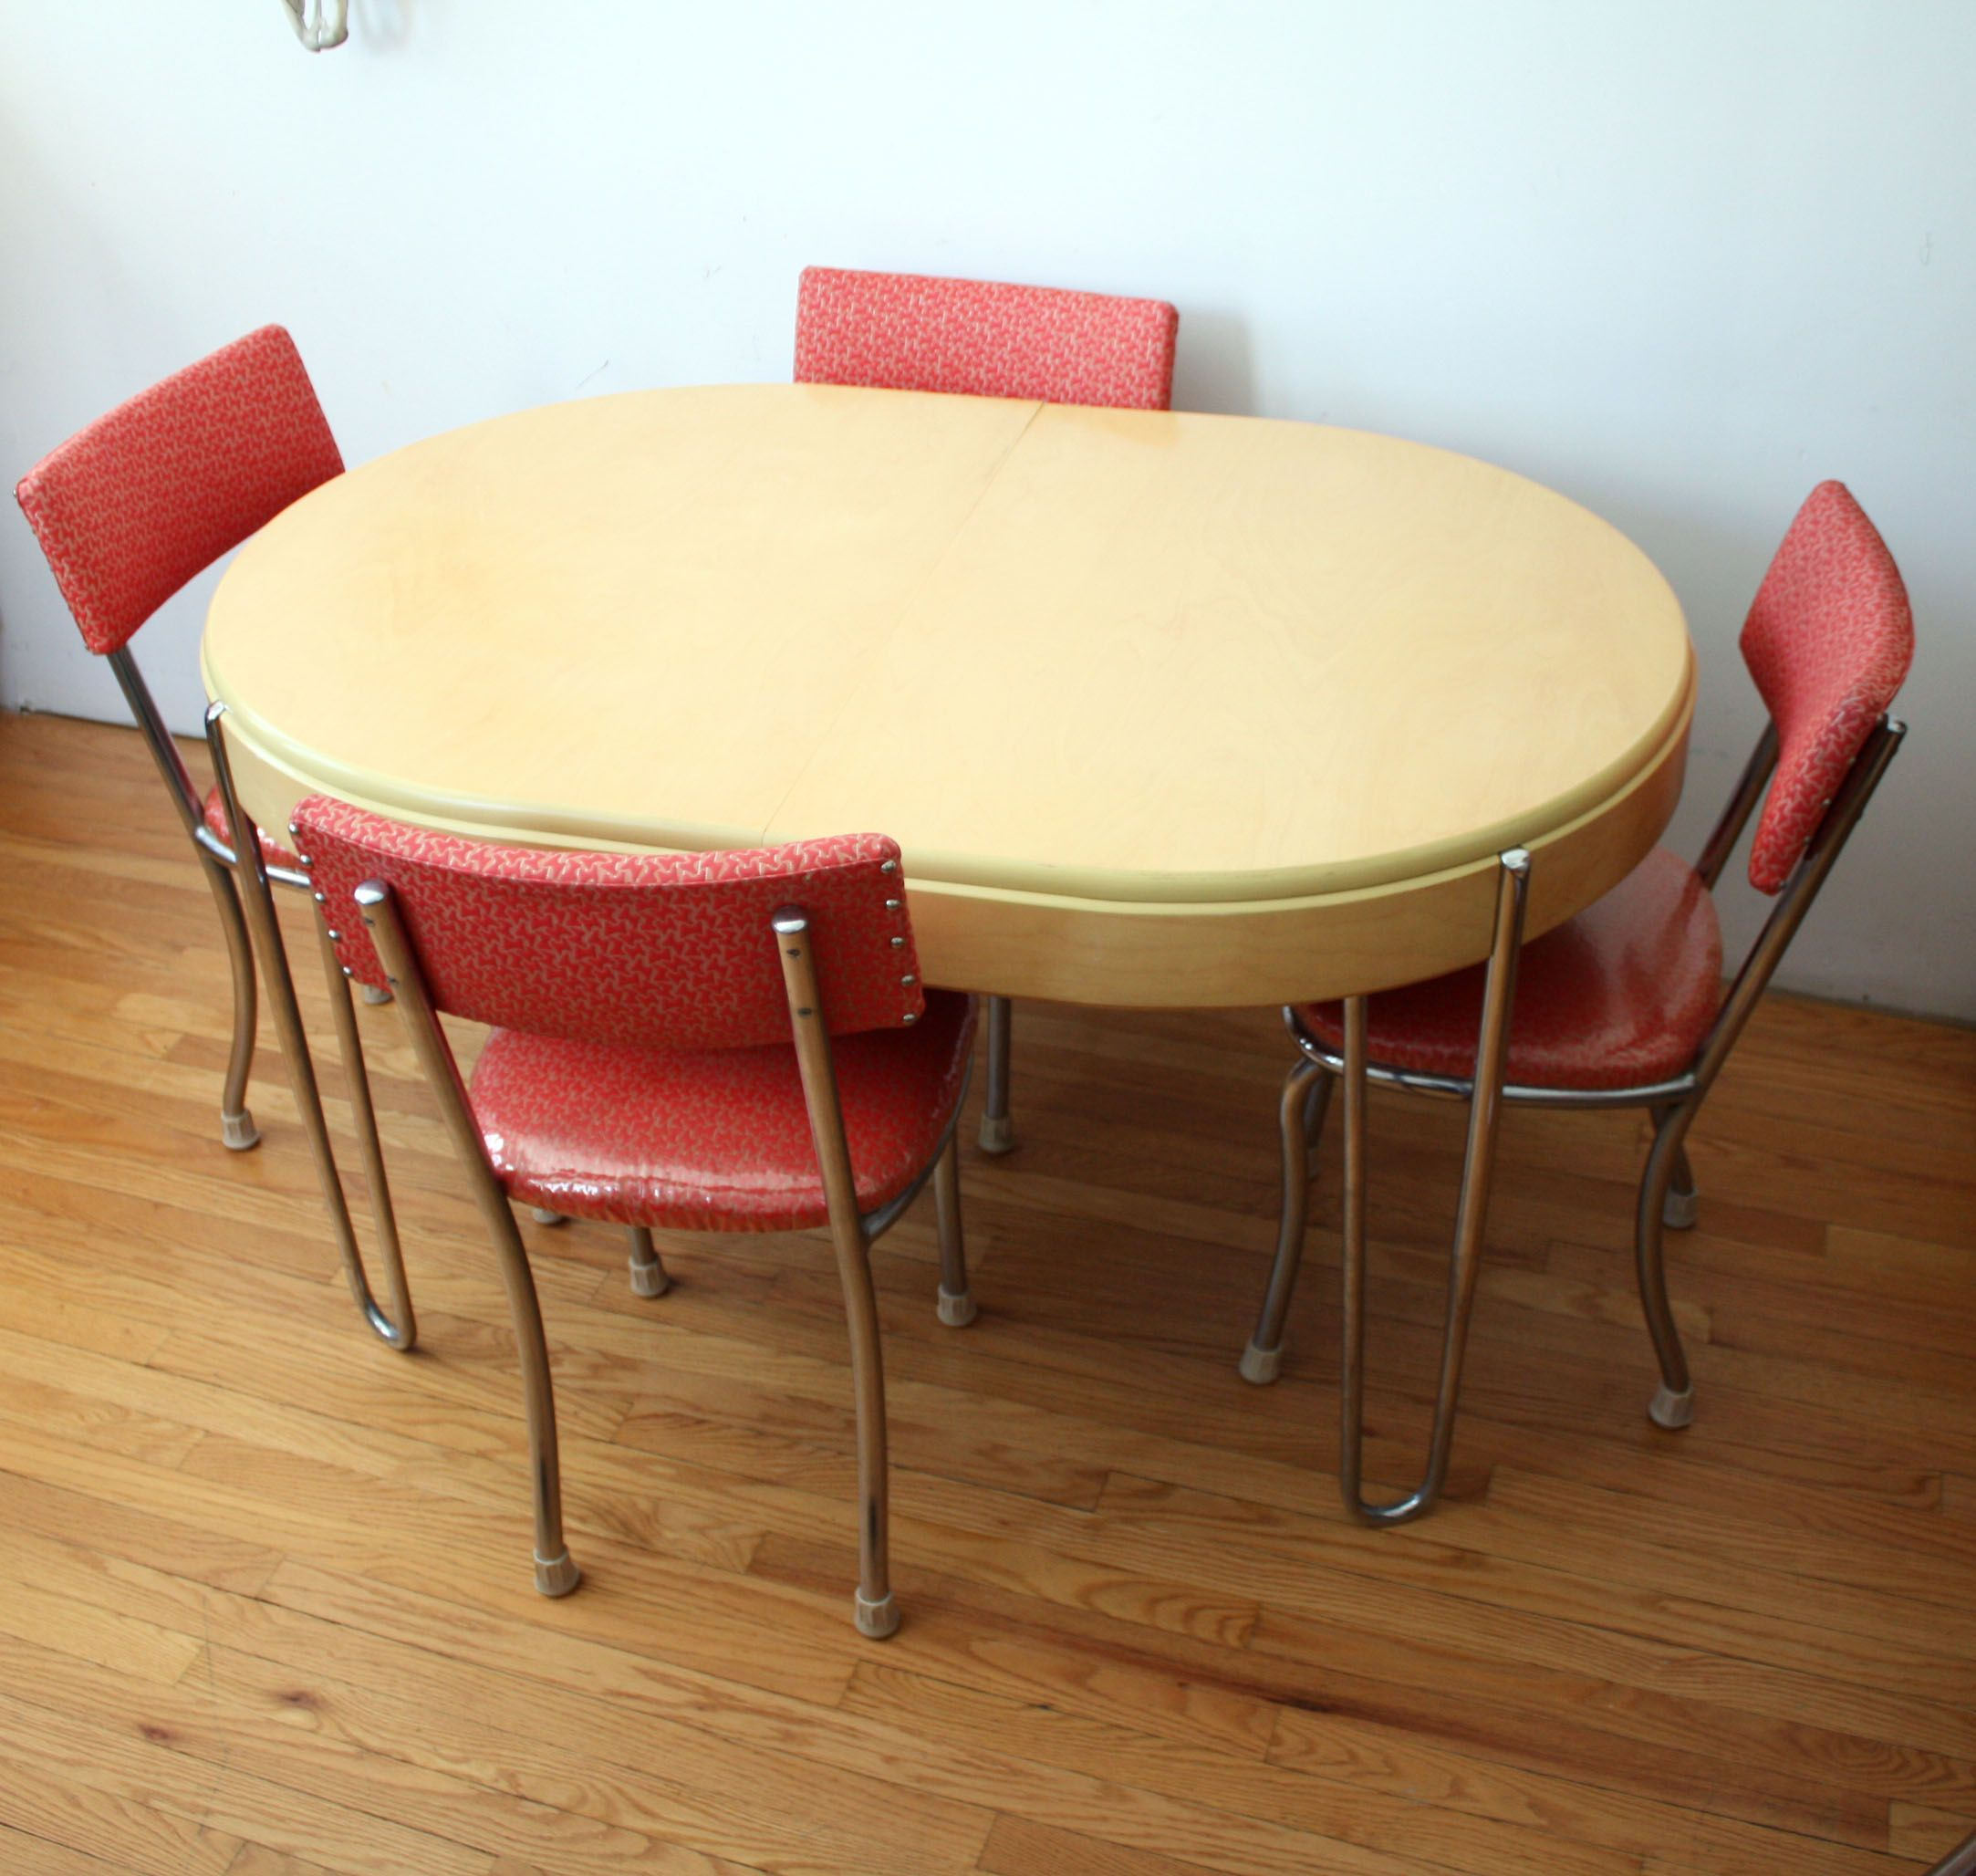 Retro table and chairs retro furniture and decor images at